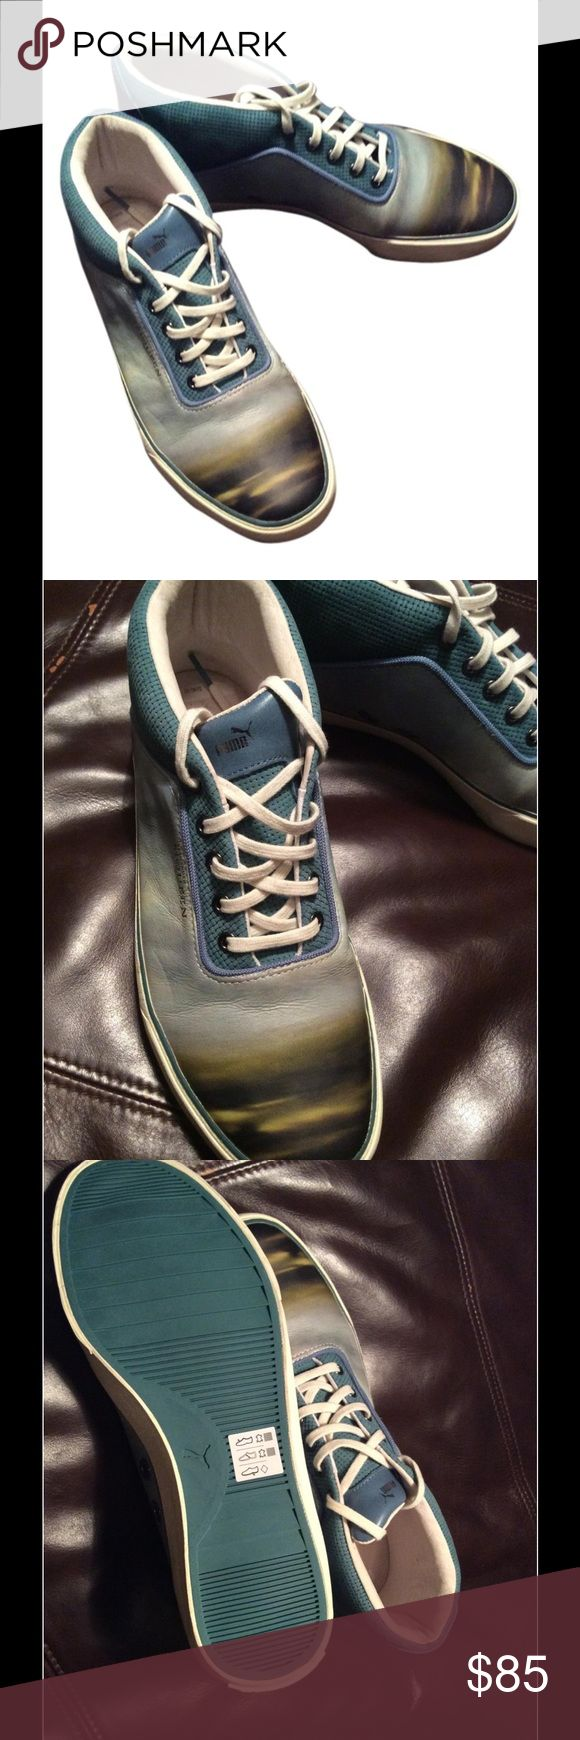 Alexander McQueen/ Puma Sneakers Mix match Right foot is 8 and left foot is 7, new shoes with out boot. Alexander McQueen Shoes Athletic Shoes